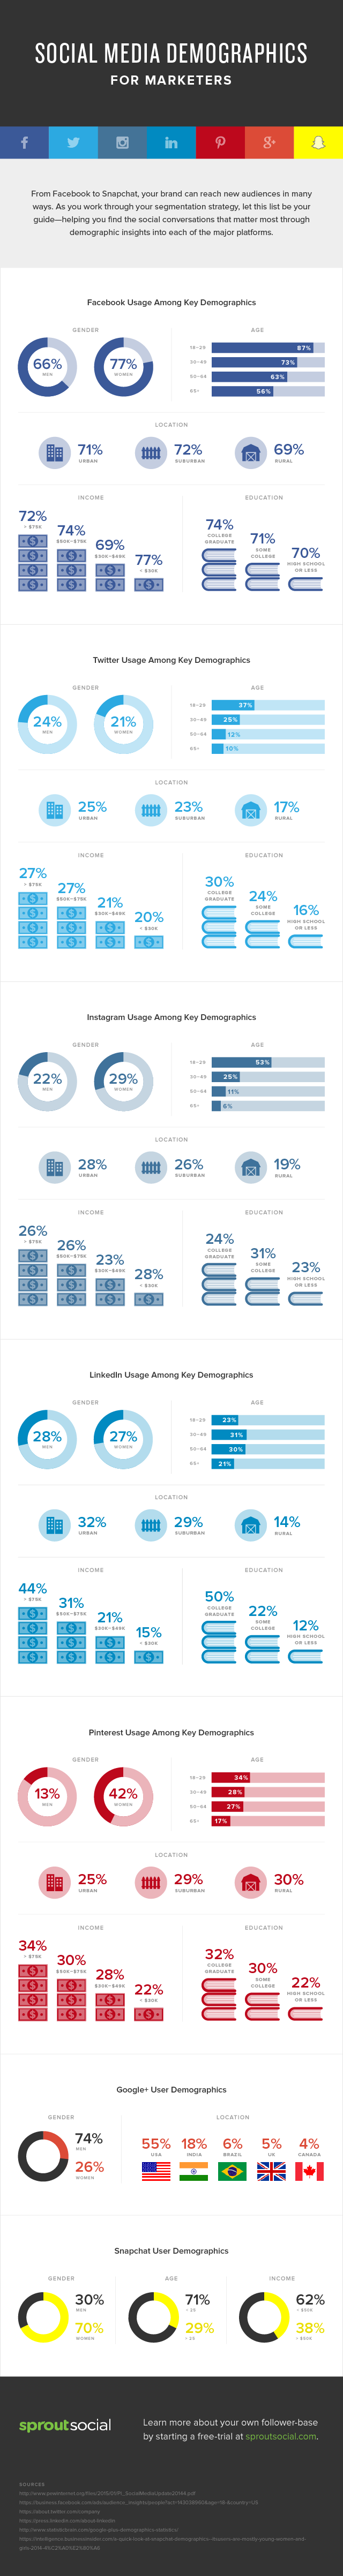 demographics-on-social-media-in-2015.png